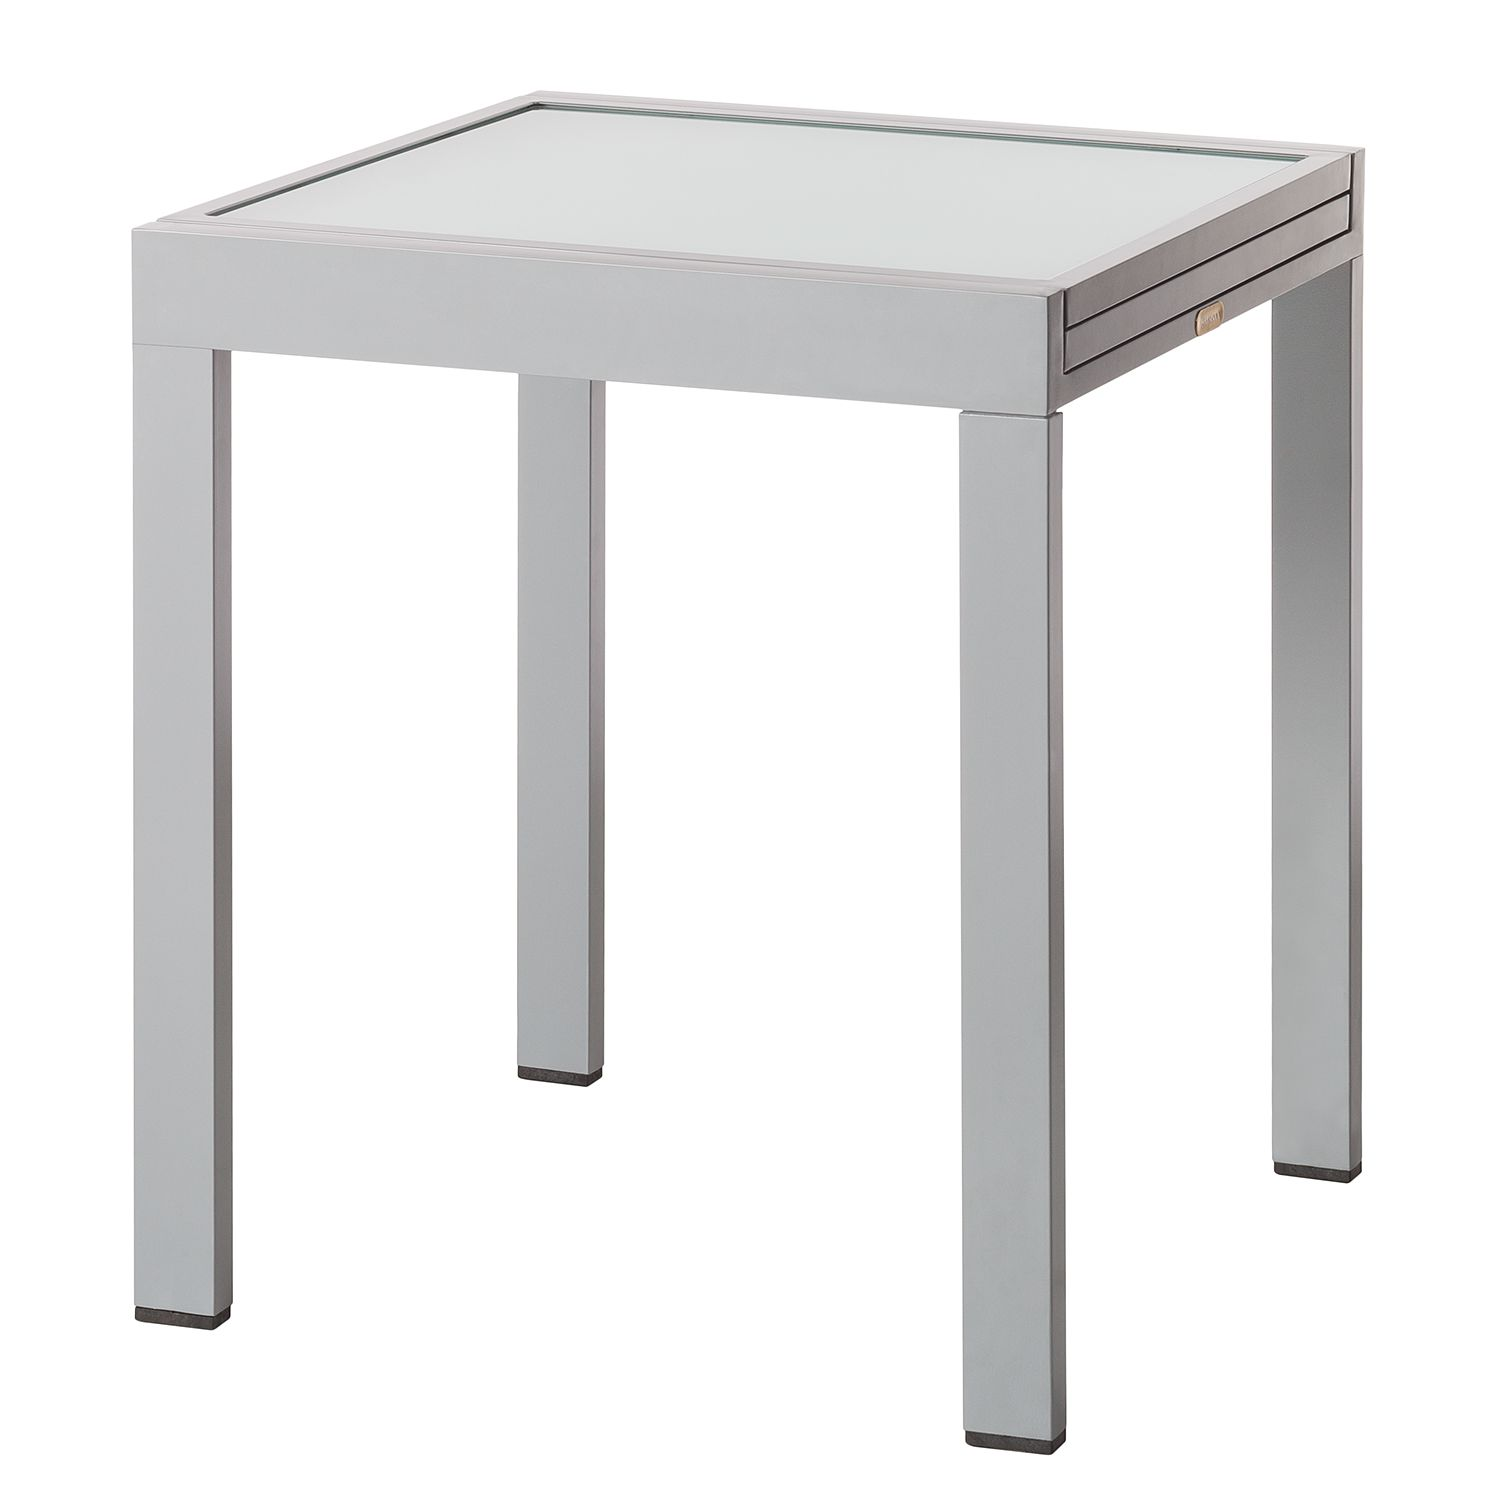 Table de jardin Iwate (extensible)